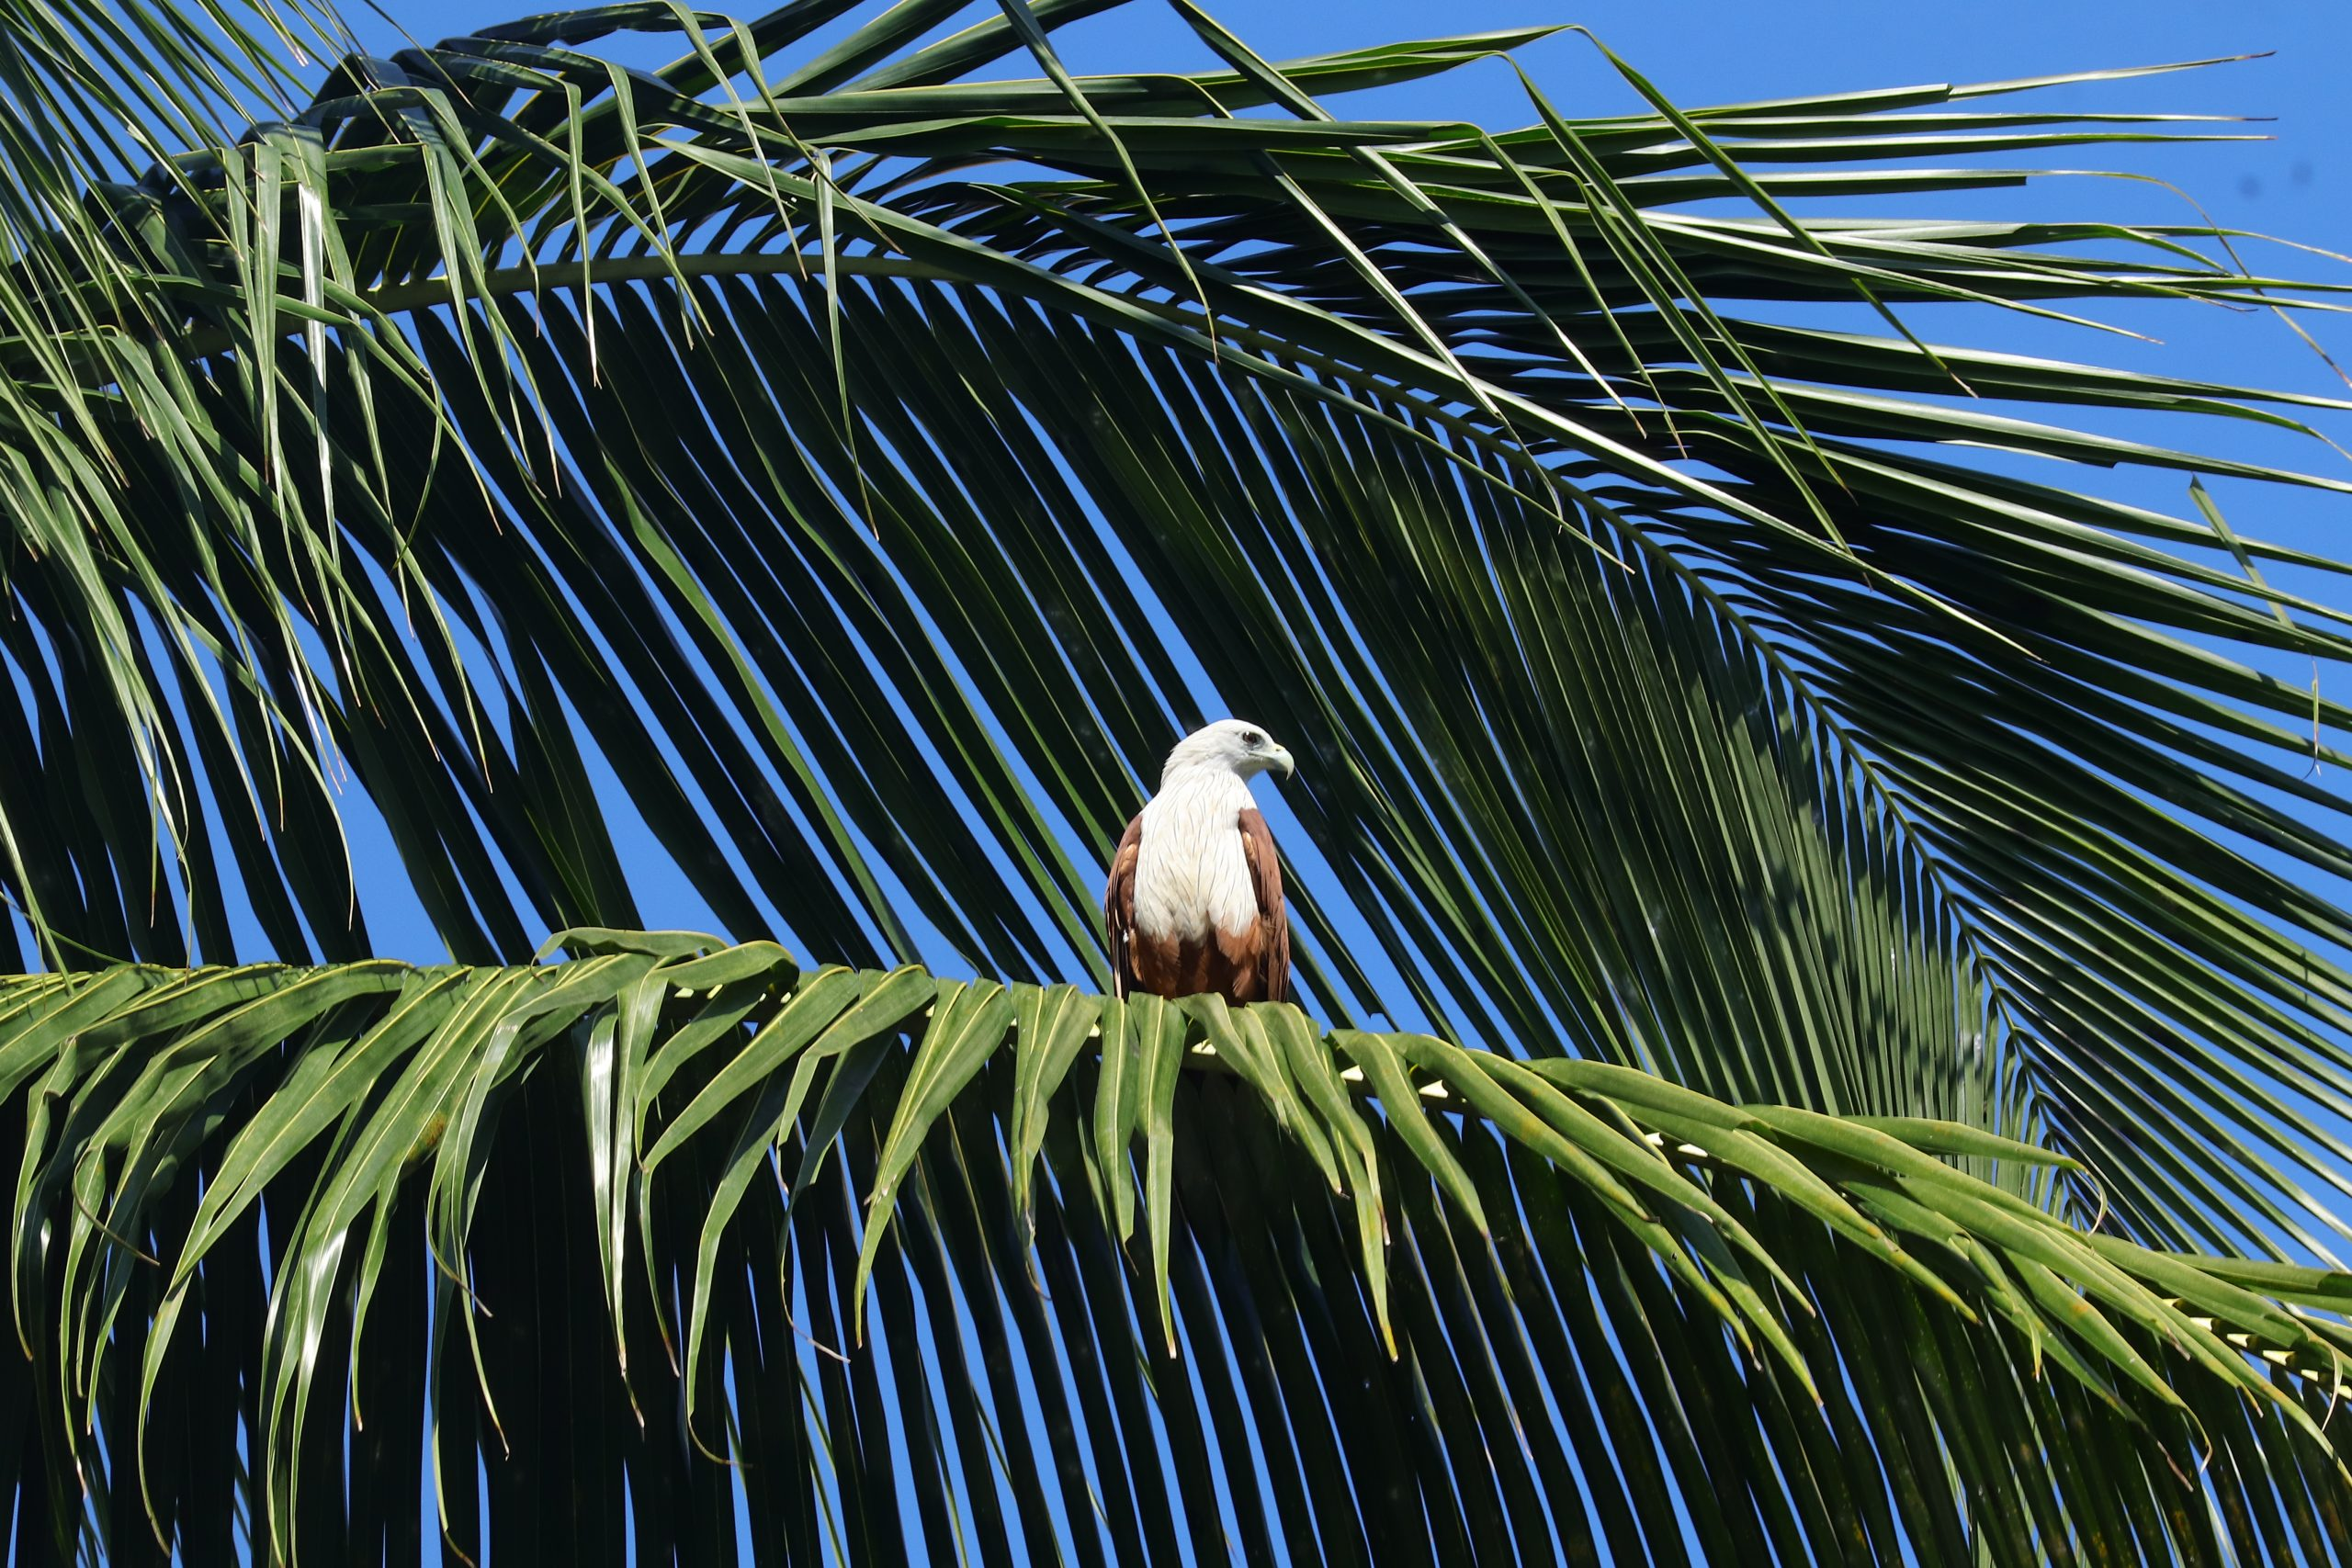 Eagle sitting on a branch of palm tree